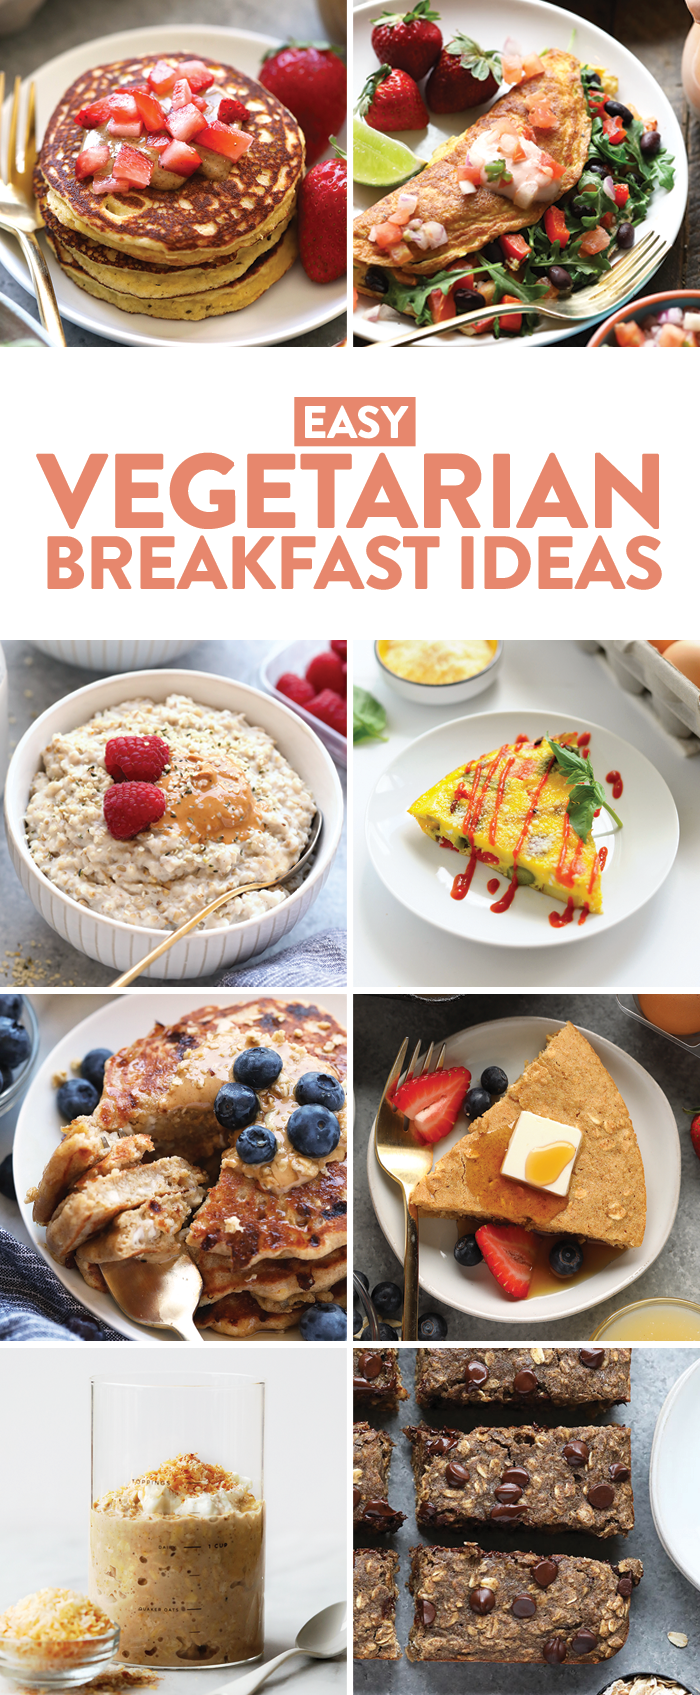 Are you team savory or team sweet? When it comes to healthy vegetarian breakfasts, I'm all about savory. And if I can start my day off with a savory meal-prepped brekkie on the go that will actually keep me full til lunch, even better. Regardless of which team you're on, these healthy vegetarian breakfast recipes will help you start your day off right with a protein-packed meal. A win-win, right?!